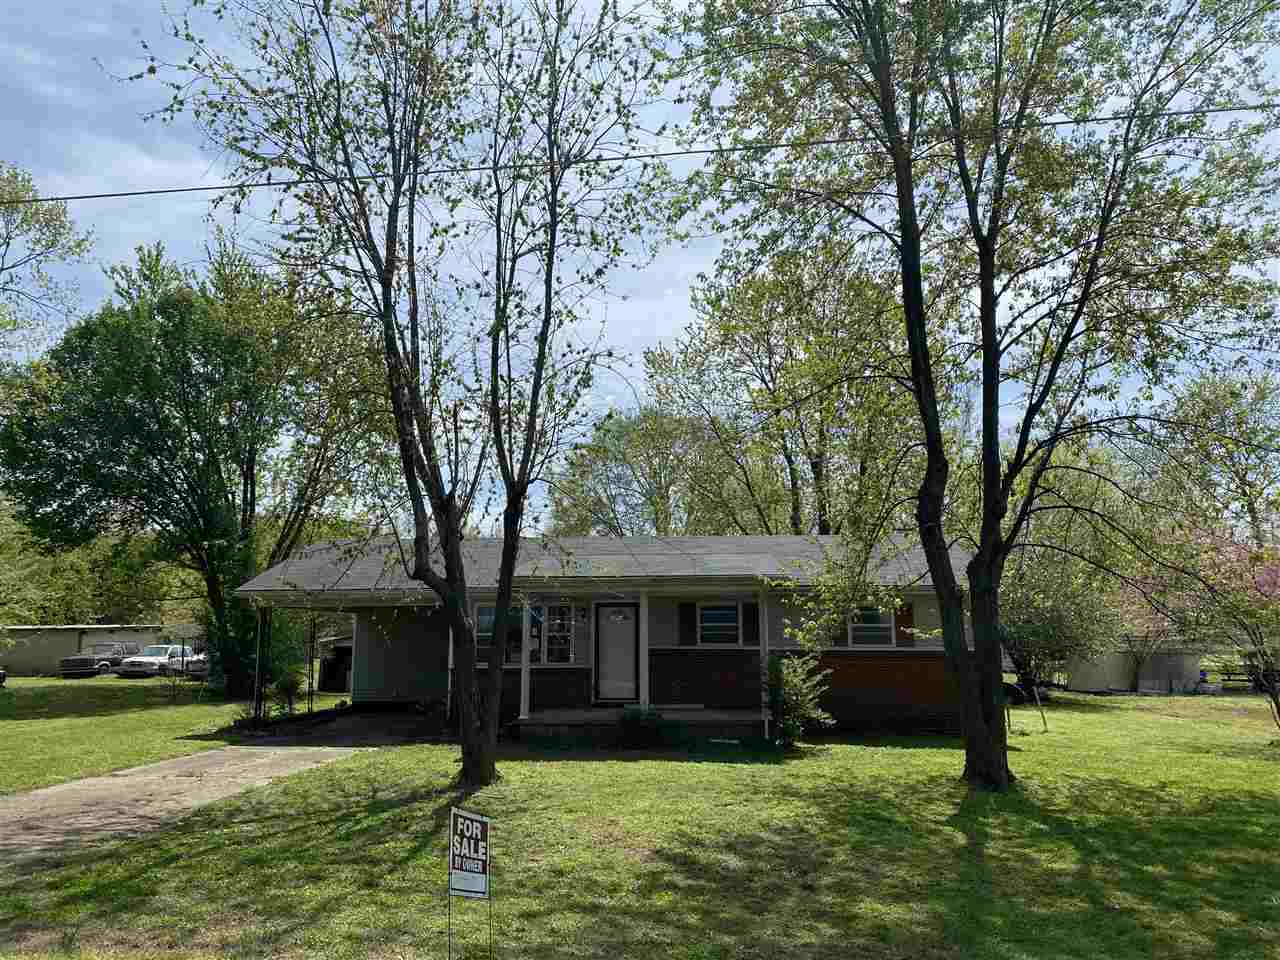 805 Magnolia Rd, Tiptonville, Tennessee 38079, 3 Bedrooms Bedrooms, ,1 BathroomBathrooms,Residential,For Sale,805 Magnolia Rd,202975